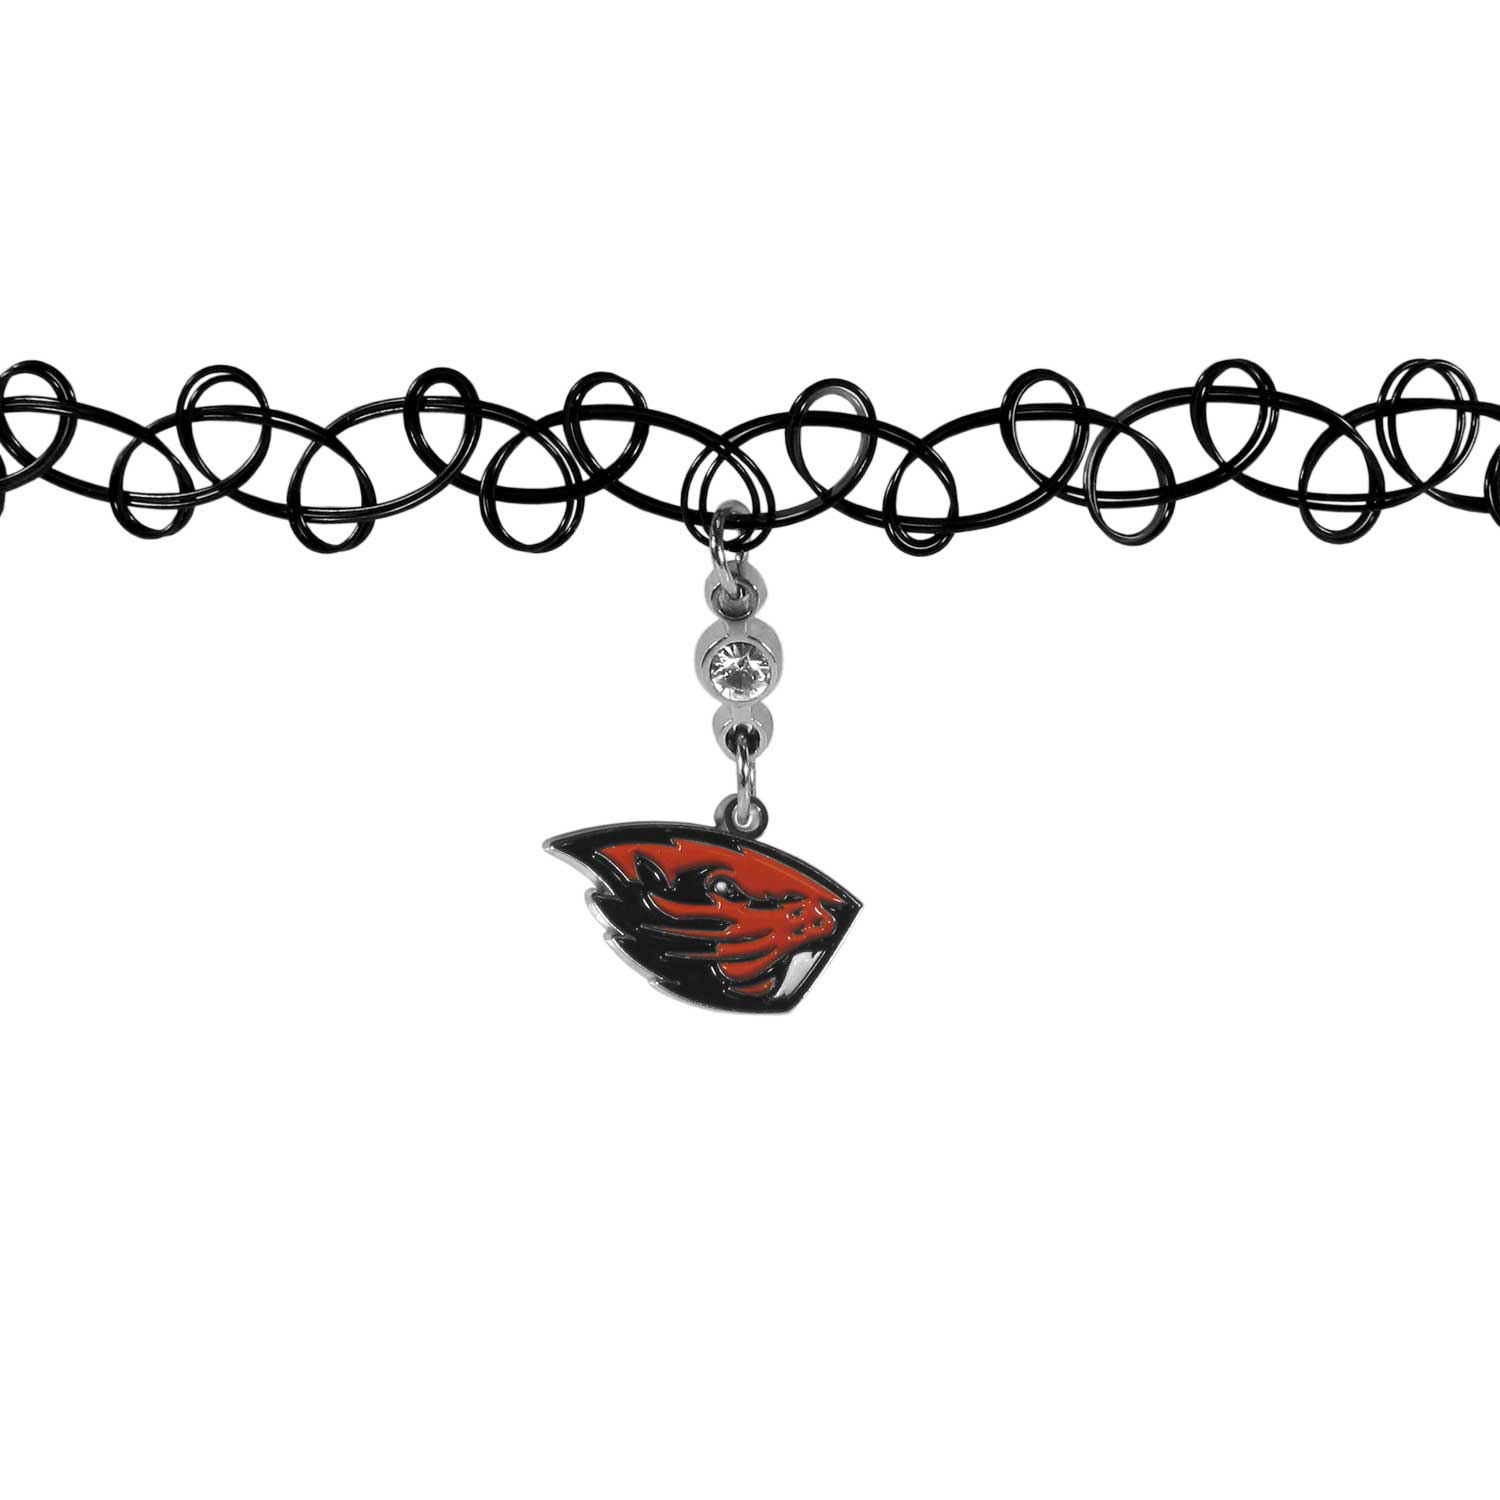 Oregon St. Beavers Knotted Choker - This retro, knotted choker is a cool and unique piece of fan jewelry. The tattoo style choker features a high polish Oregon St. Beavers charm with rhinestone accents.